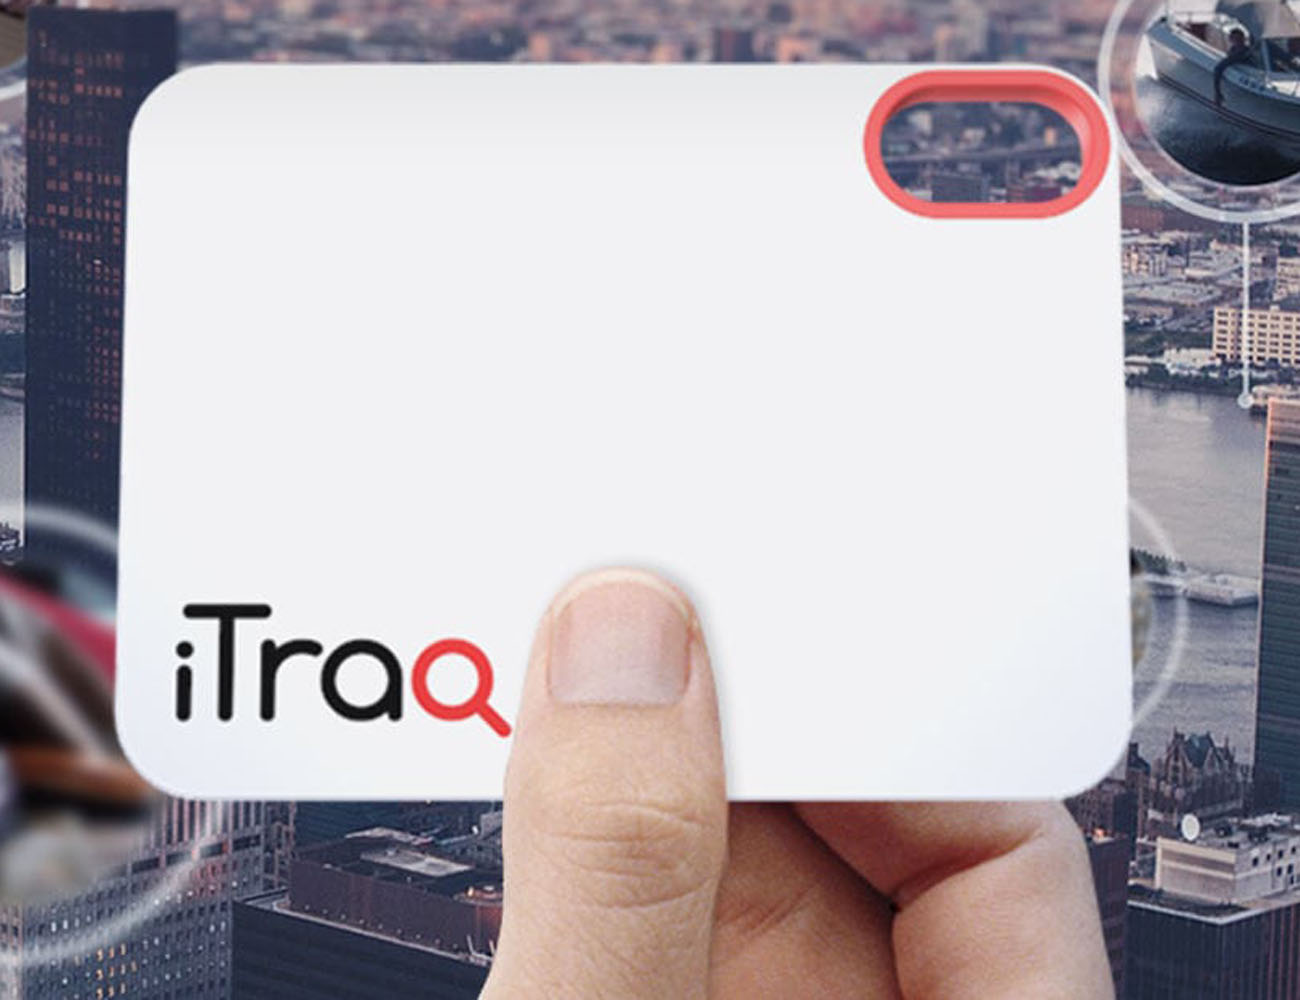 iTraq: The Cellular Tracking Device